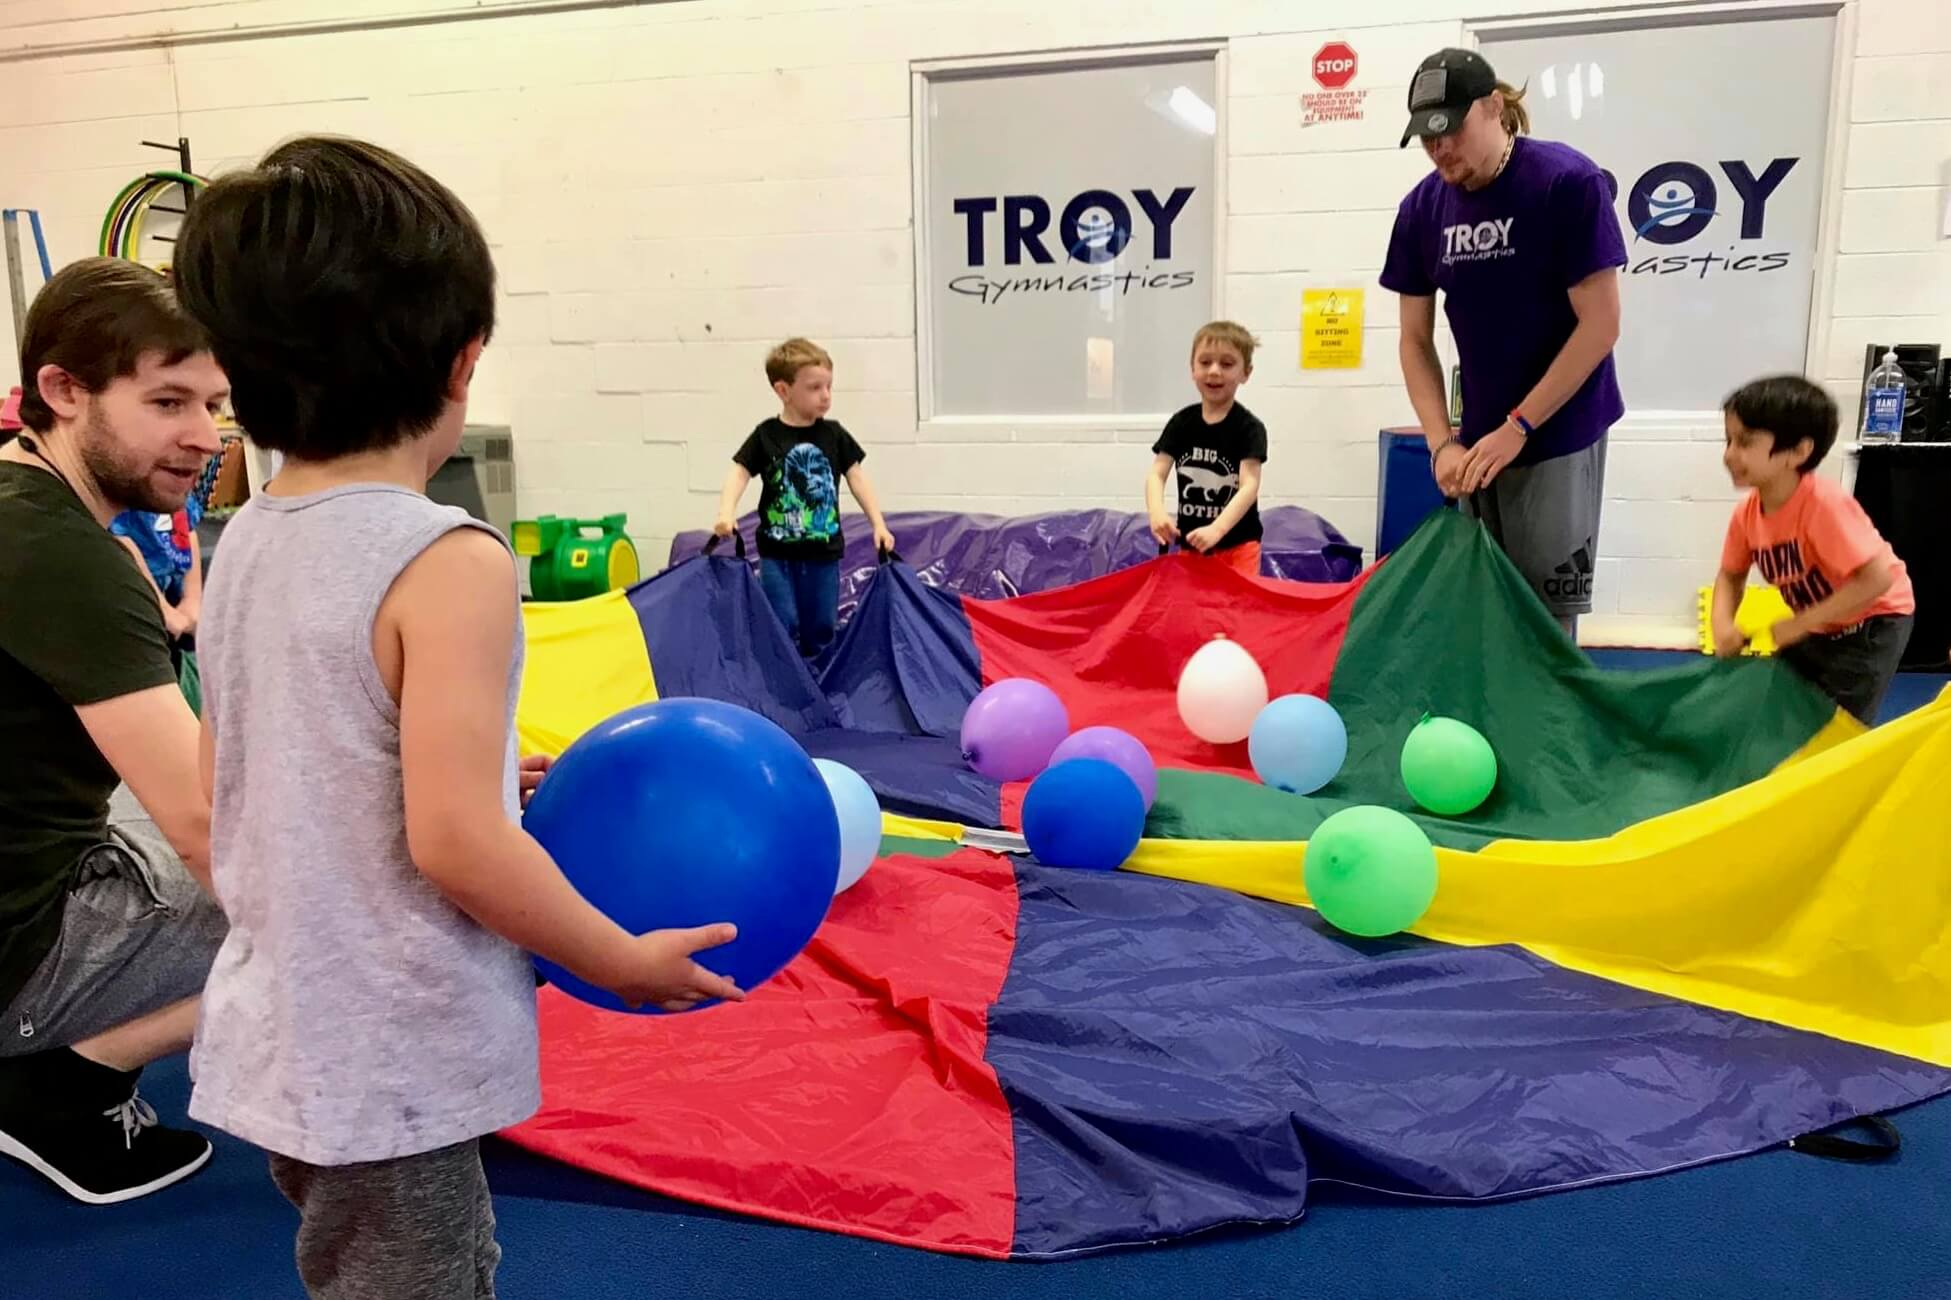 Troy Gymnastics Kids Night Out